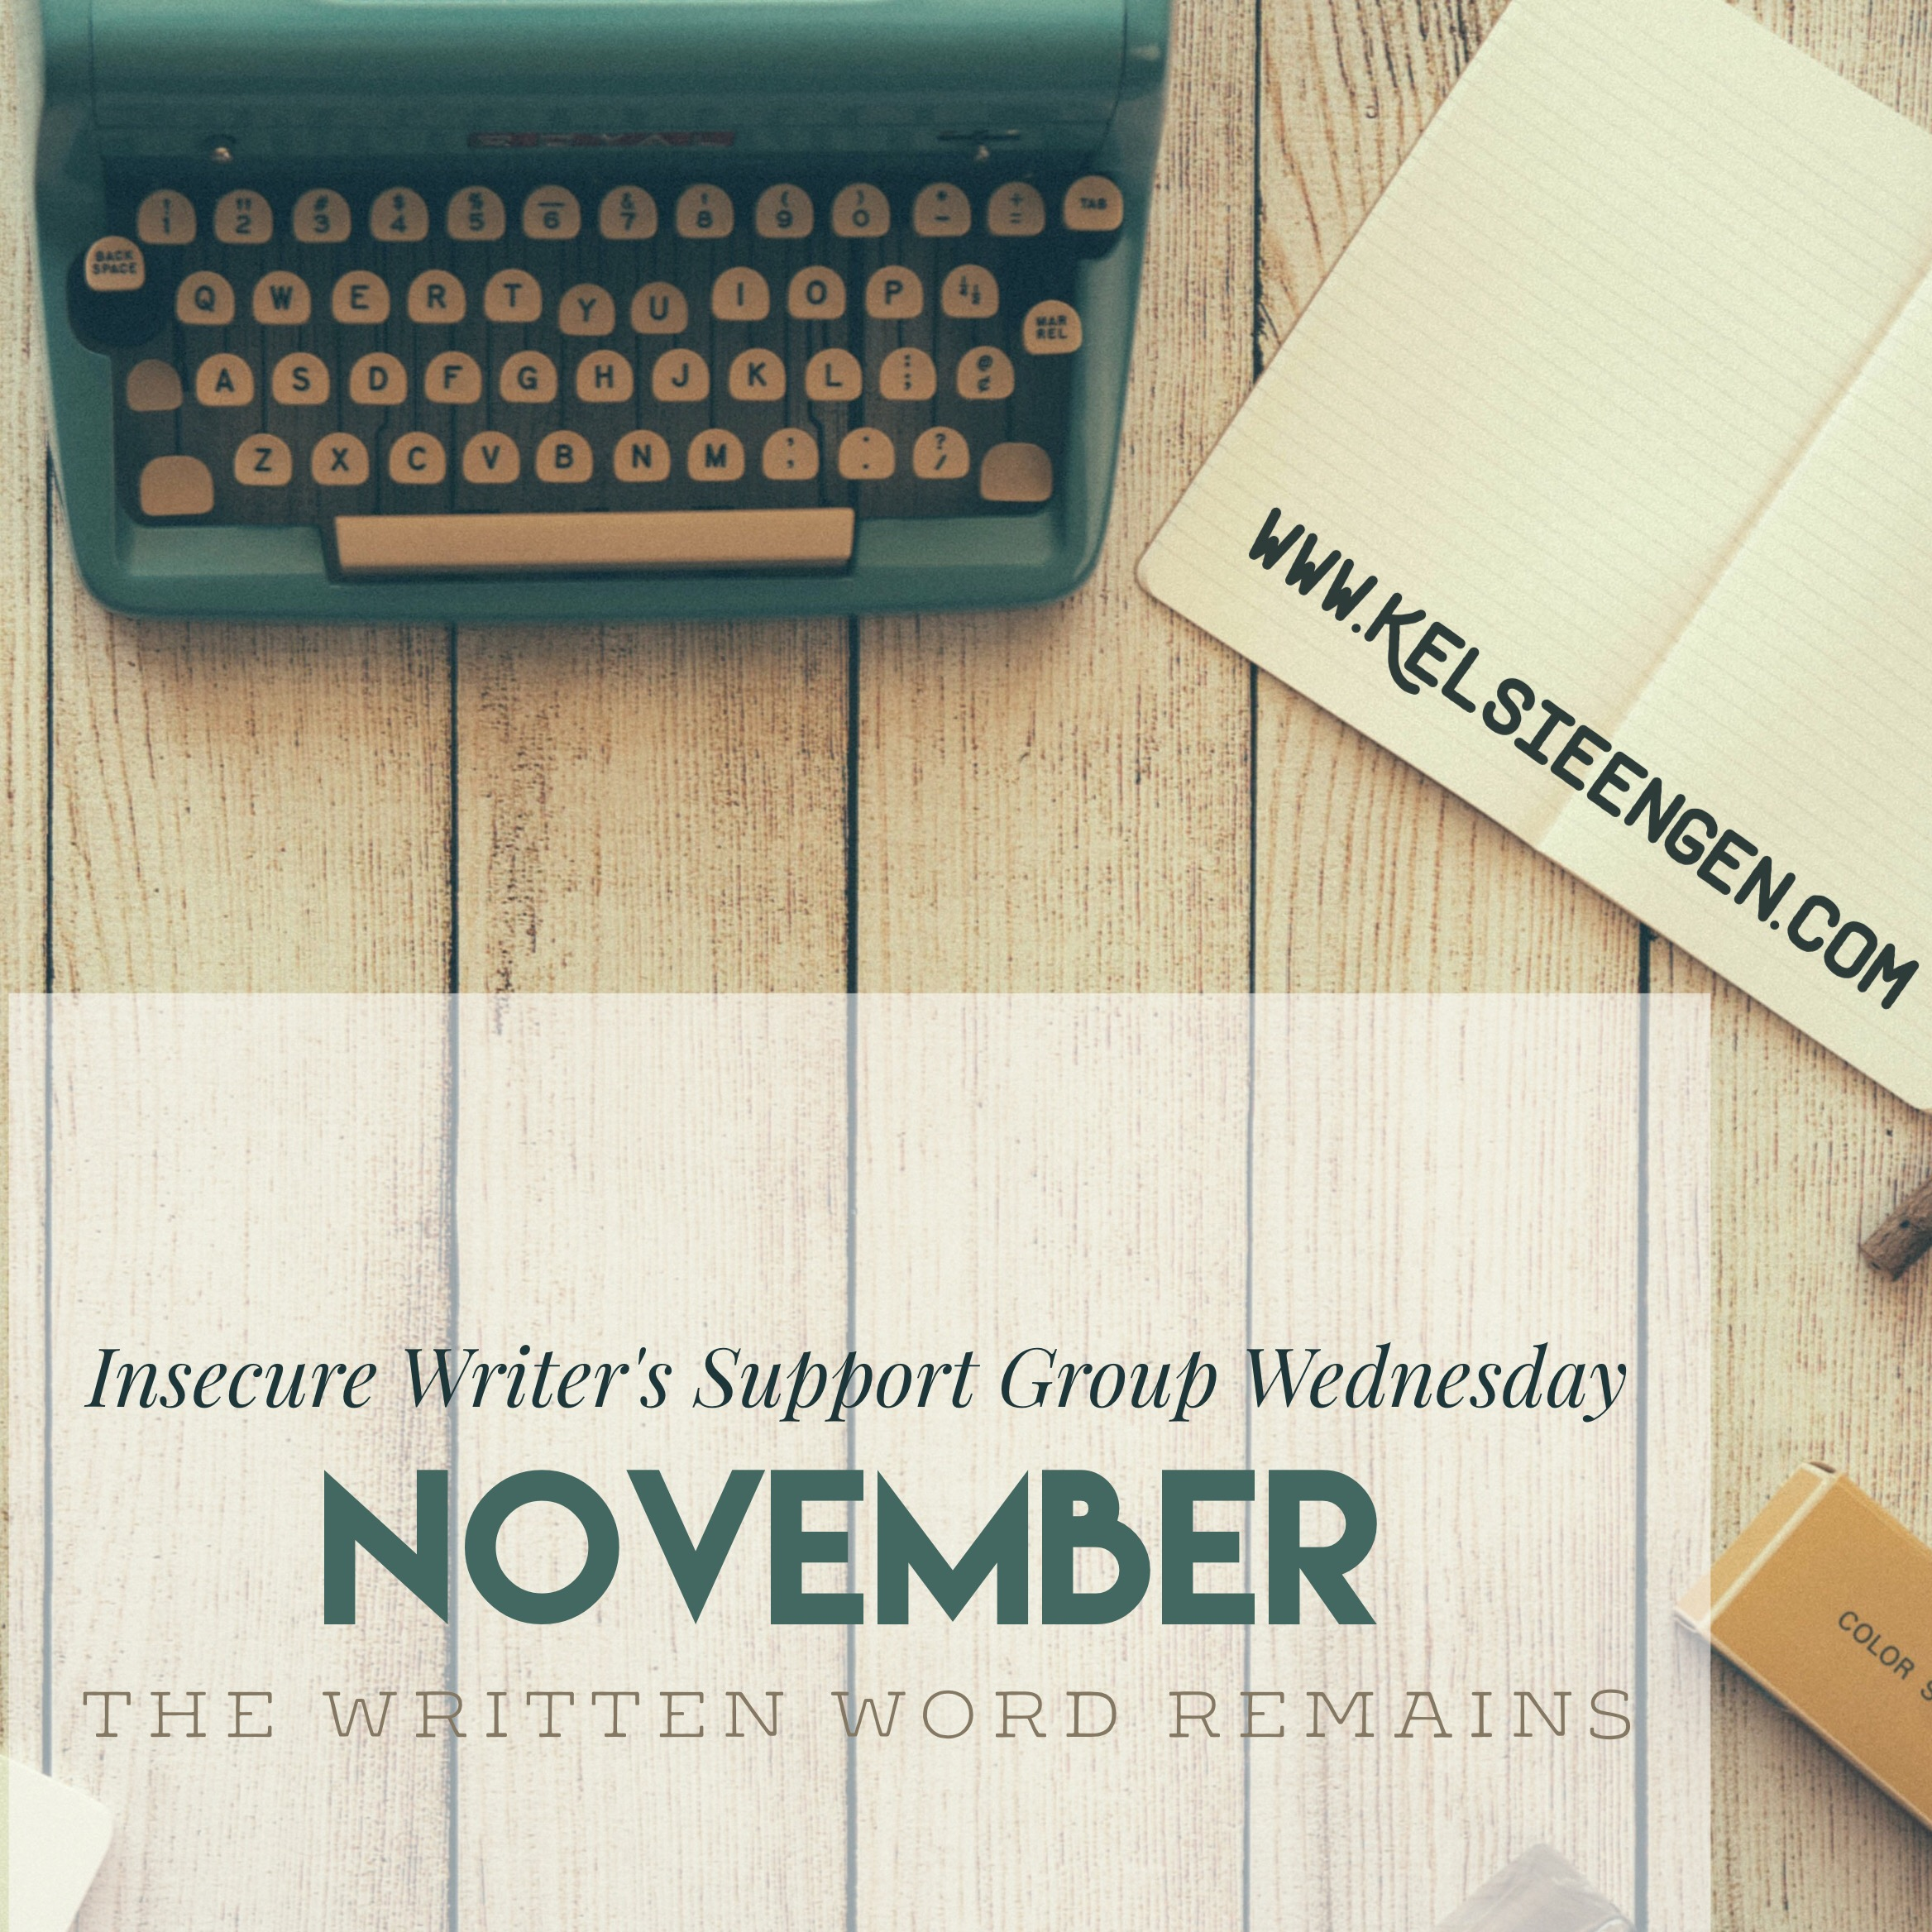 November's Insecure Writer's Support Group Wednesday